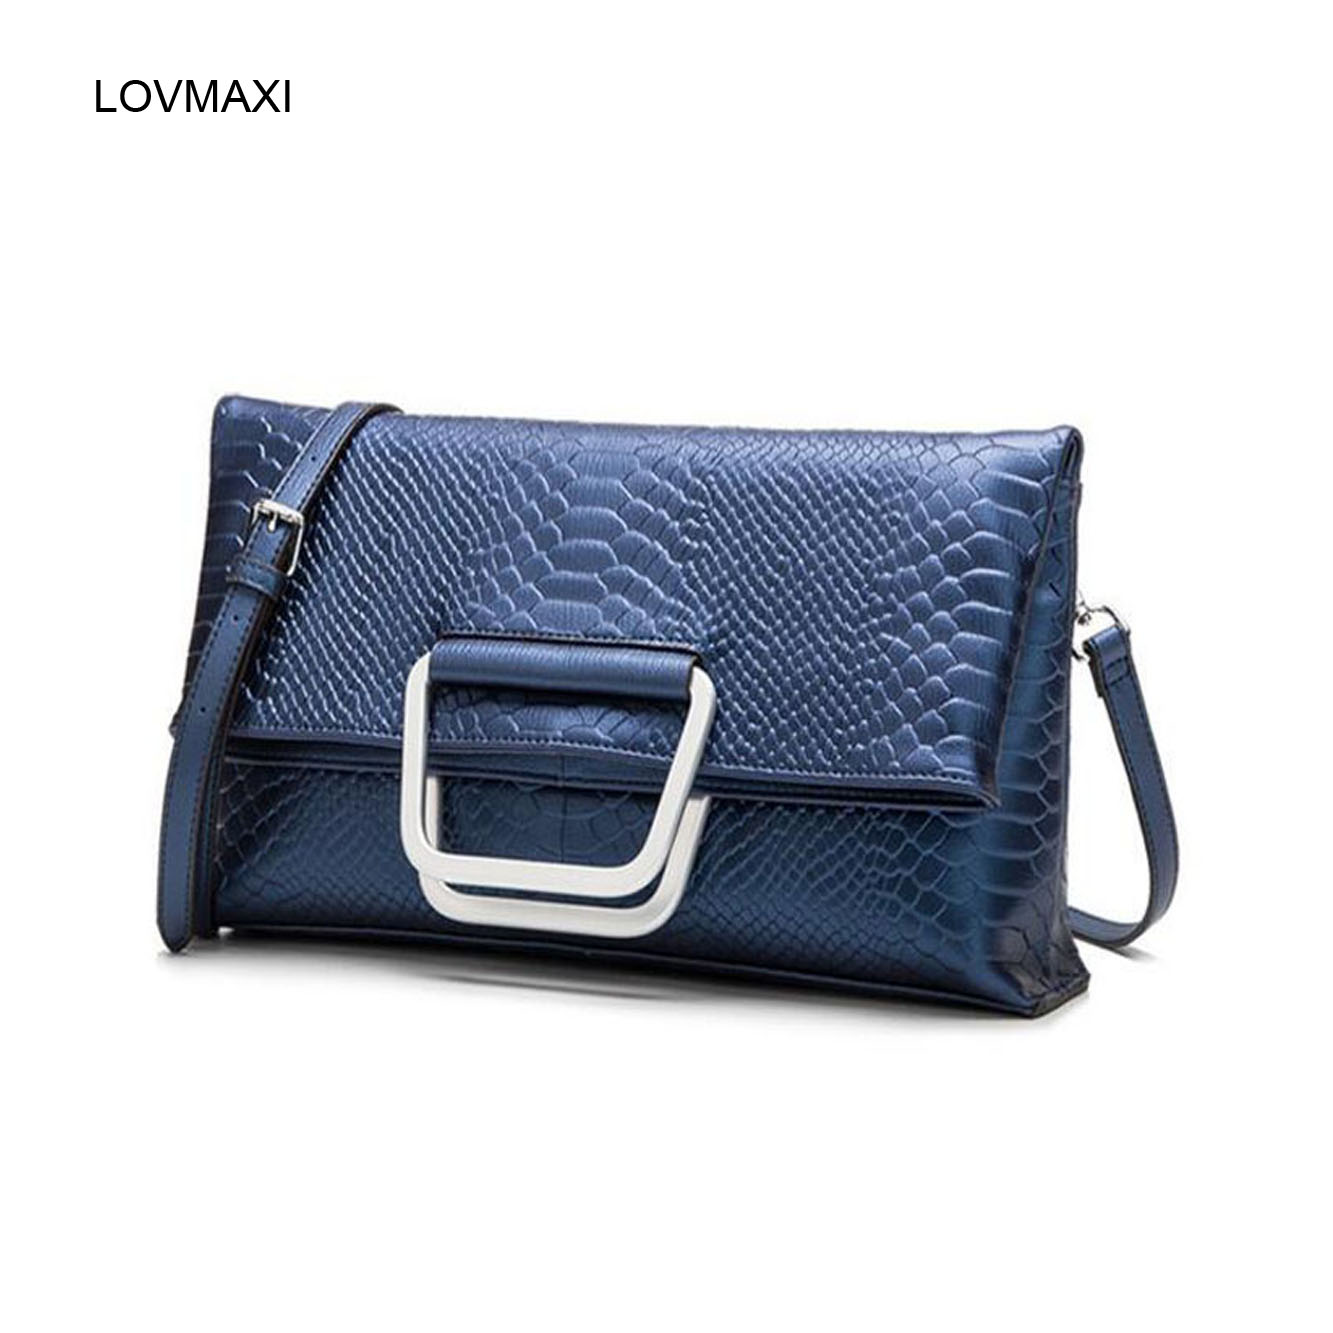 ФОТО 2017 new lady genuine leather messenger bags crocodile handbags Luxury Famous women's Evening bags shoulder bags day clutches